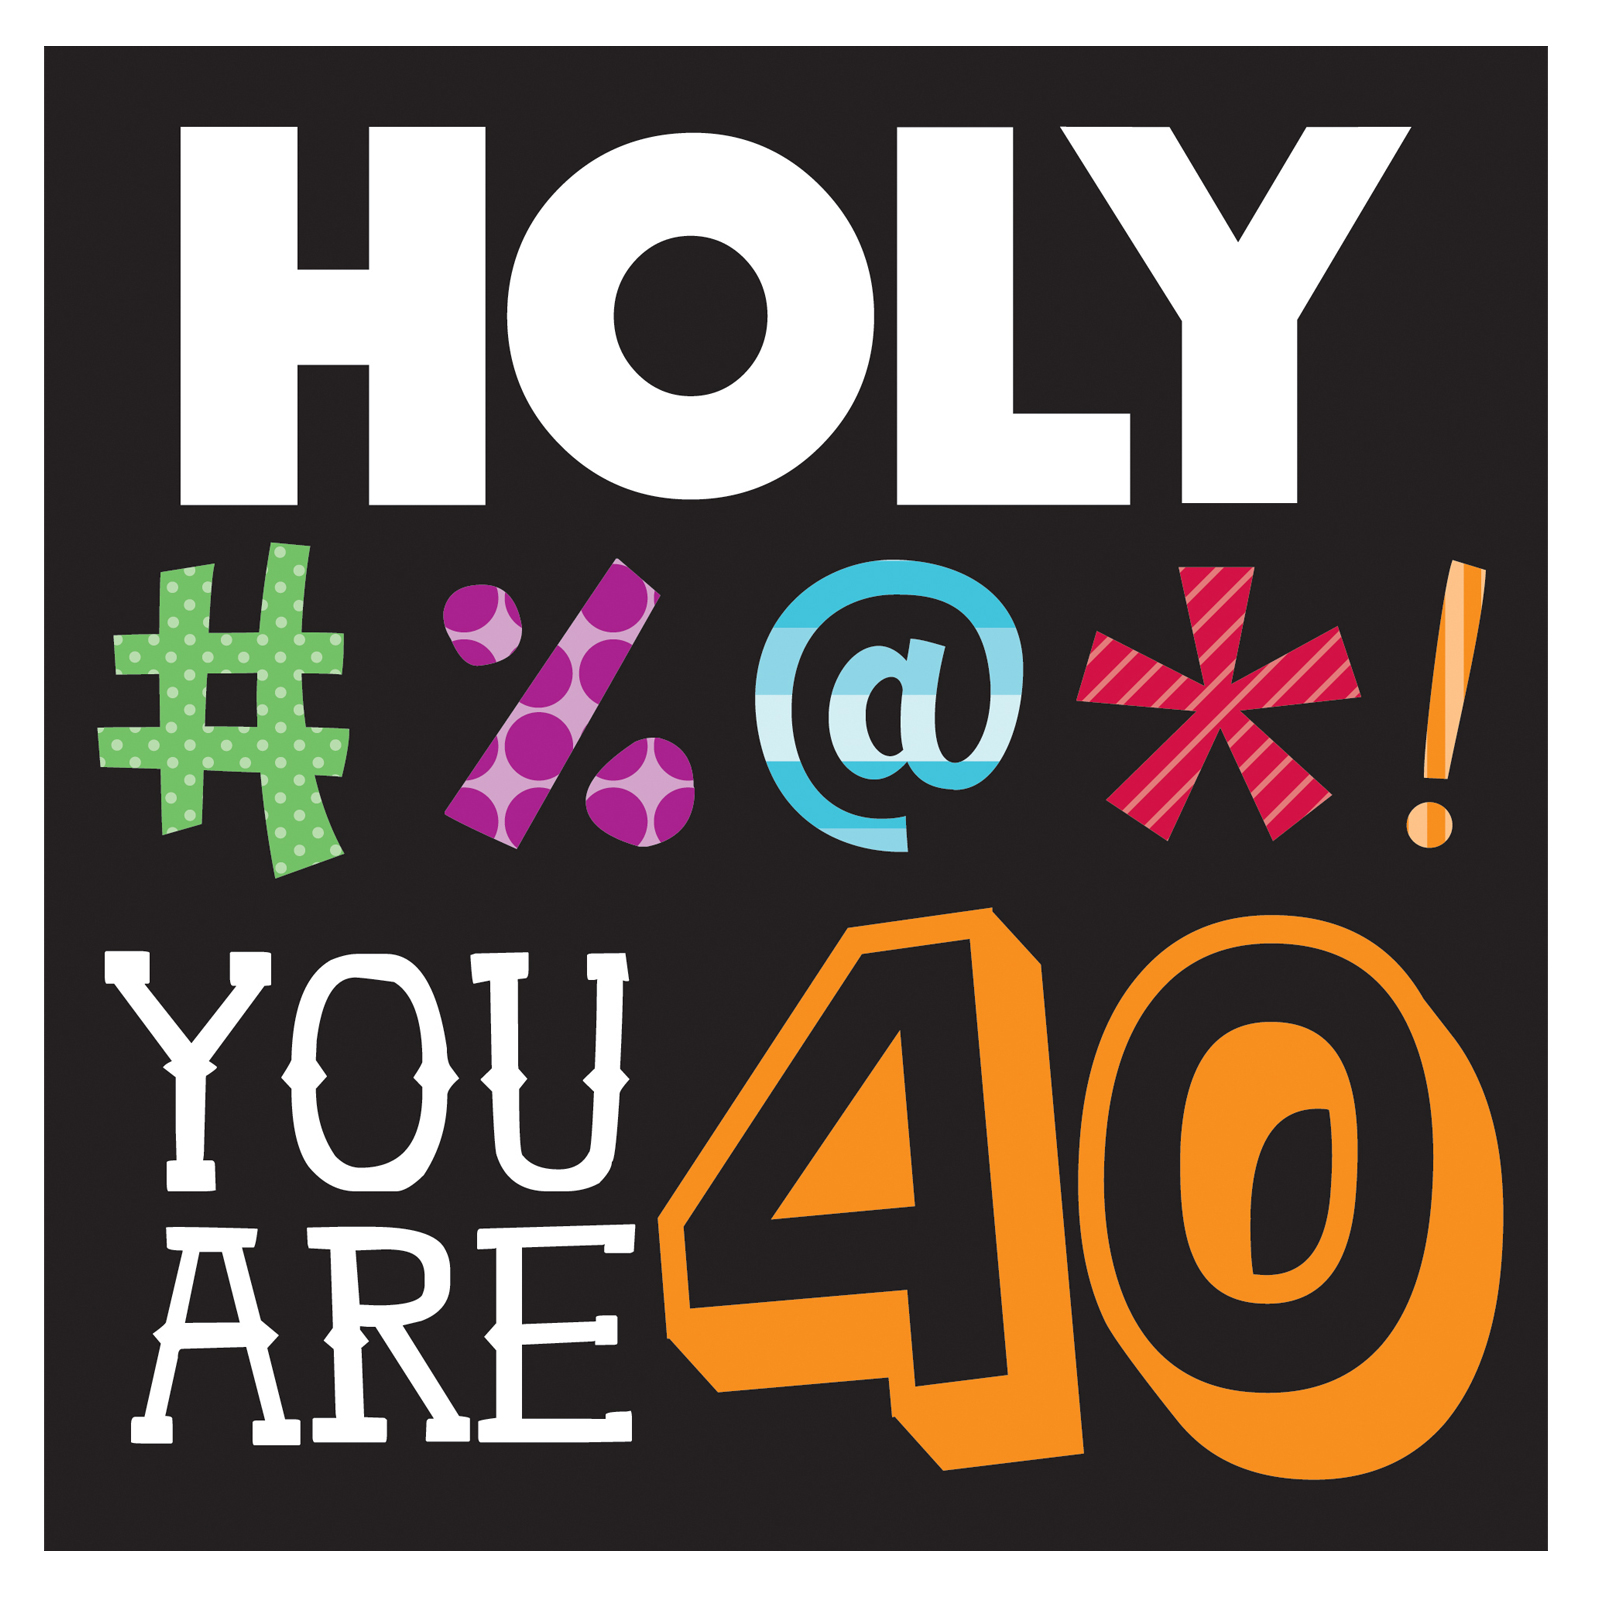 40th birthday clipart images ; funny-40th-birthday-clipart-1